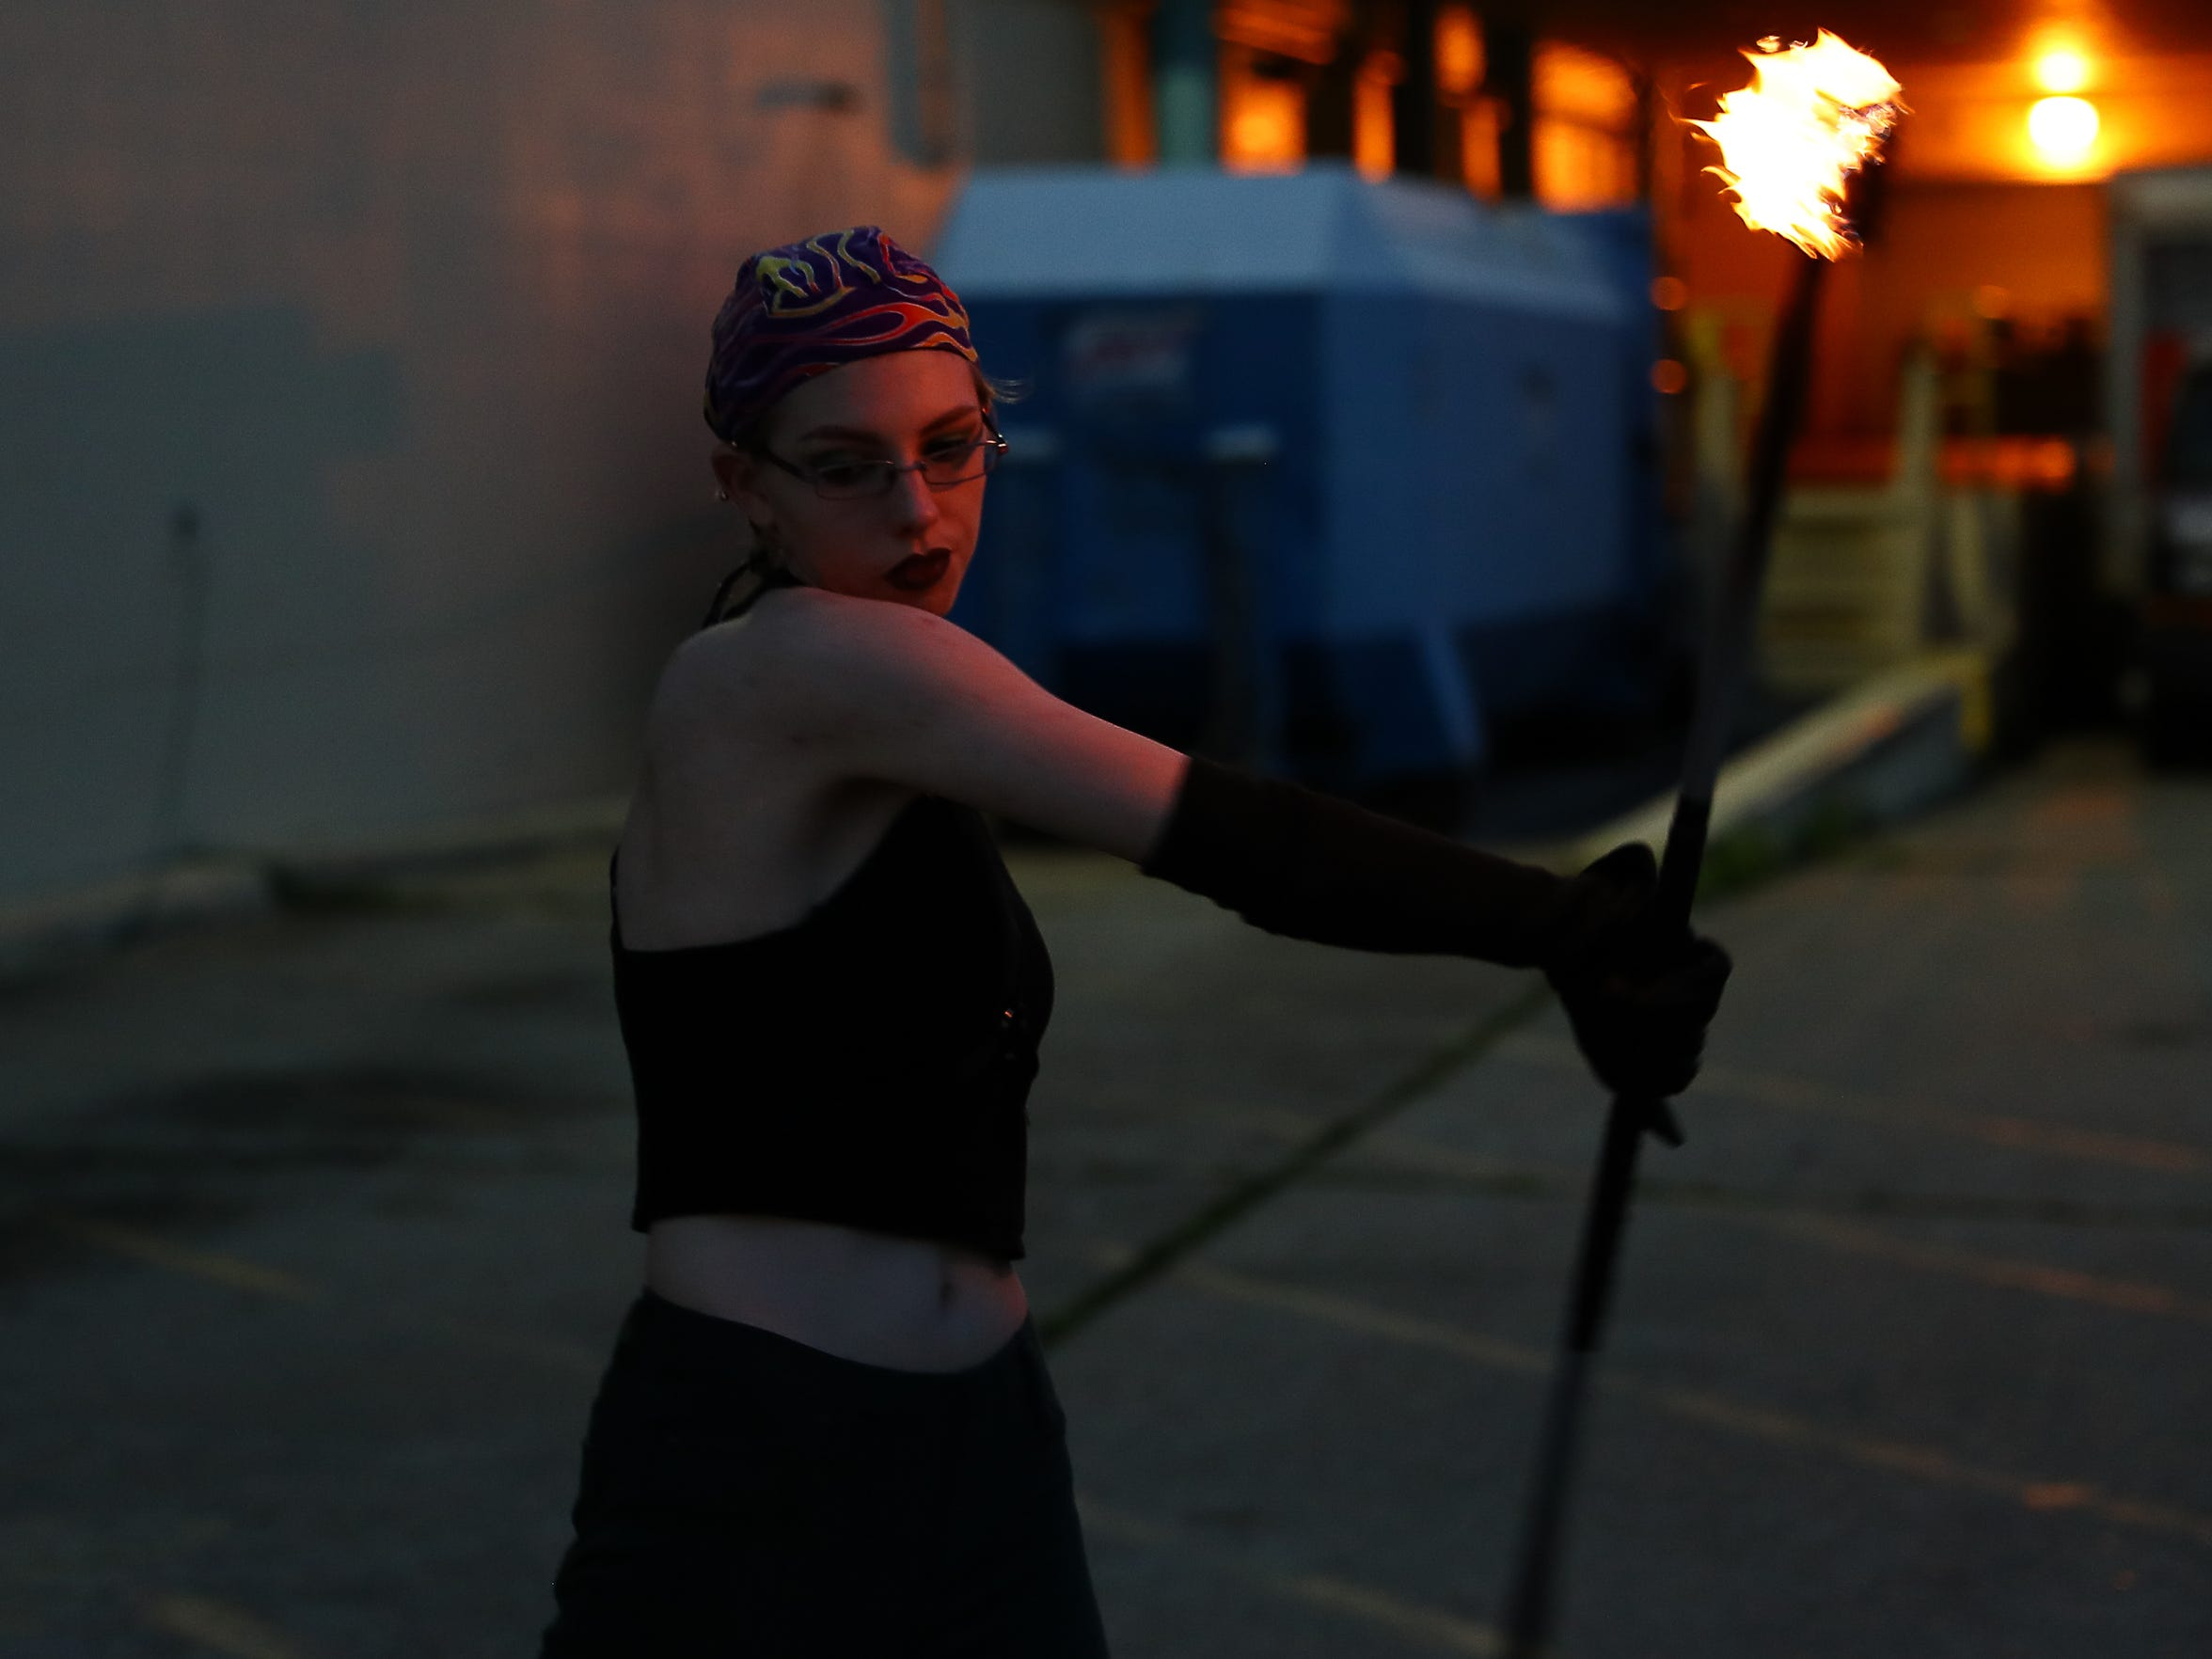 Viktoria Birr demonstrates fire spinning outside the Corpus Christi Caller-Times building on Tuesday, Feb. 27,2018.